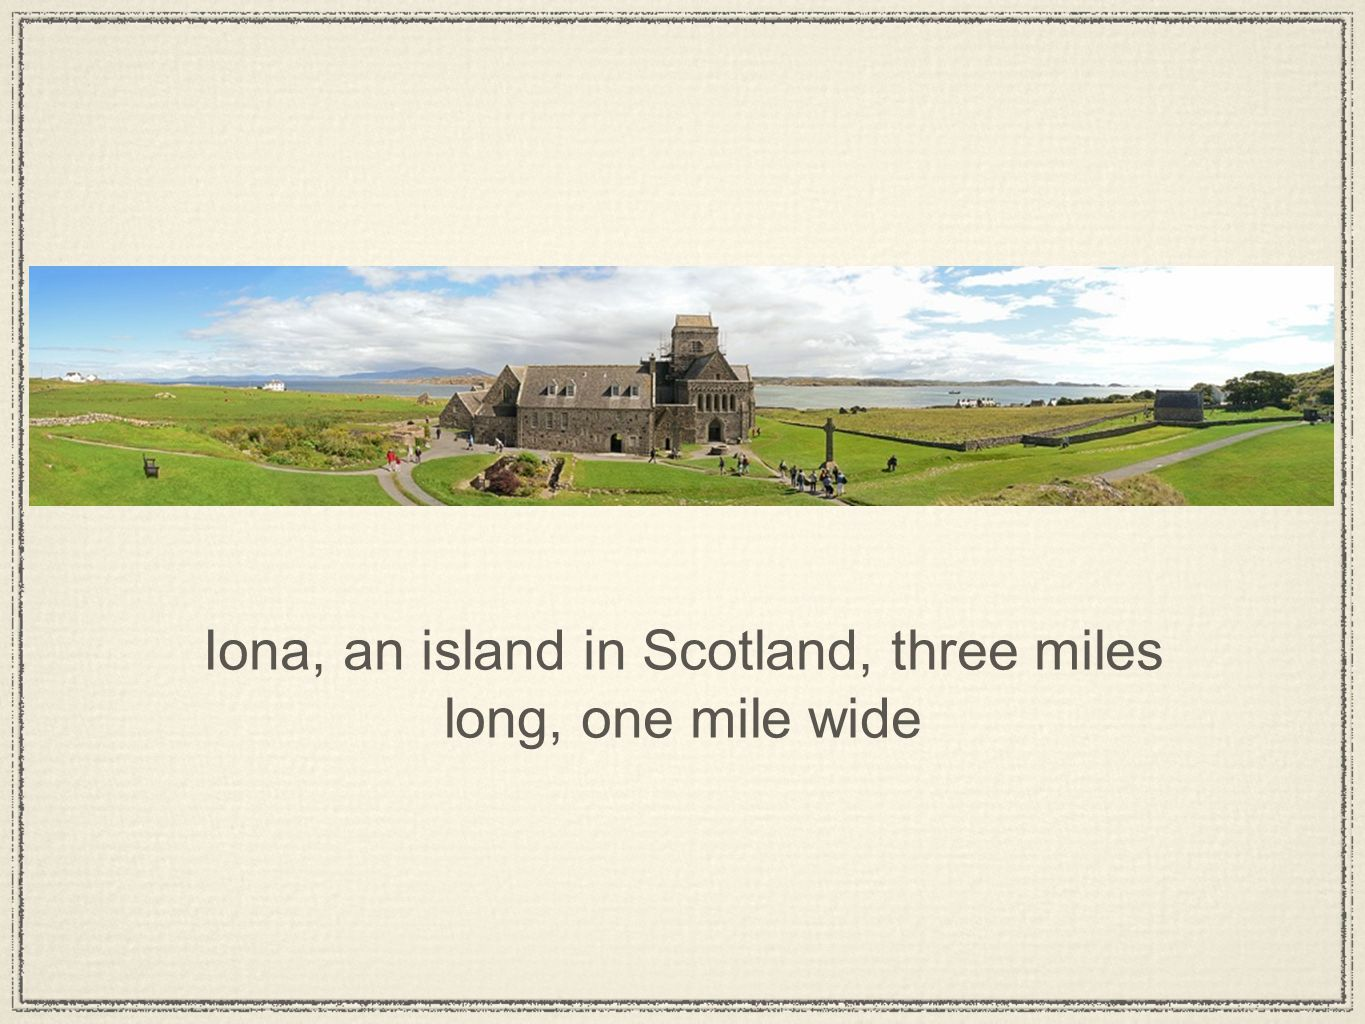 Iona, an island in Scotland, three miles long, one mile wide